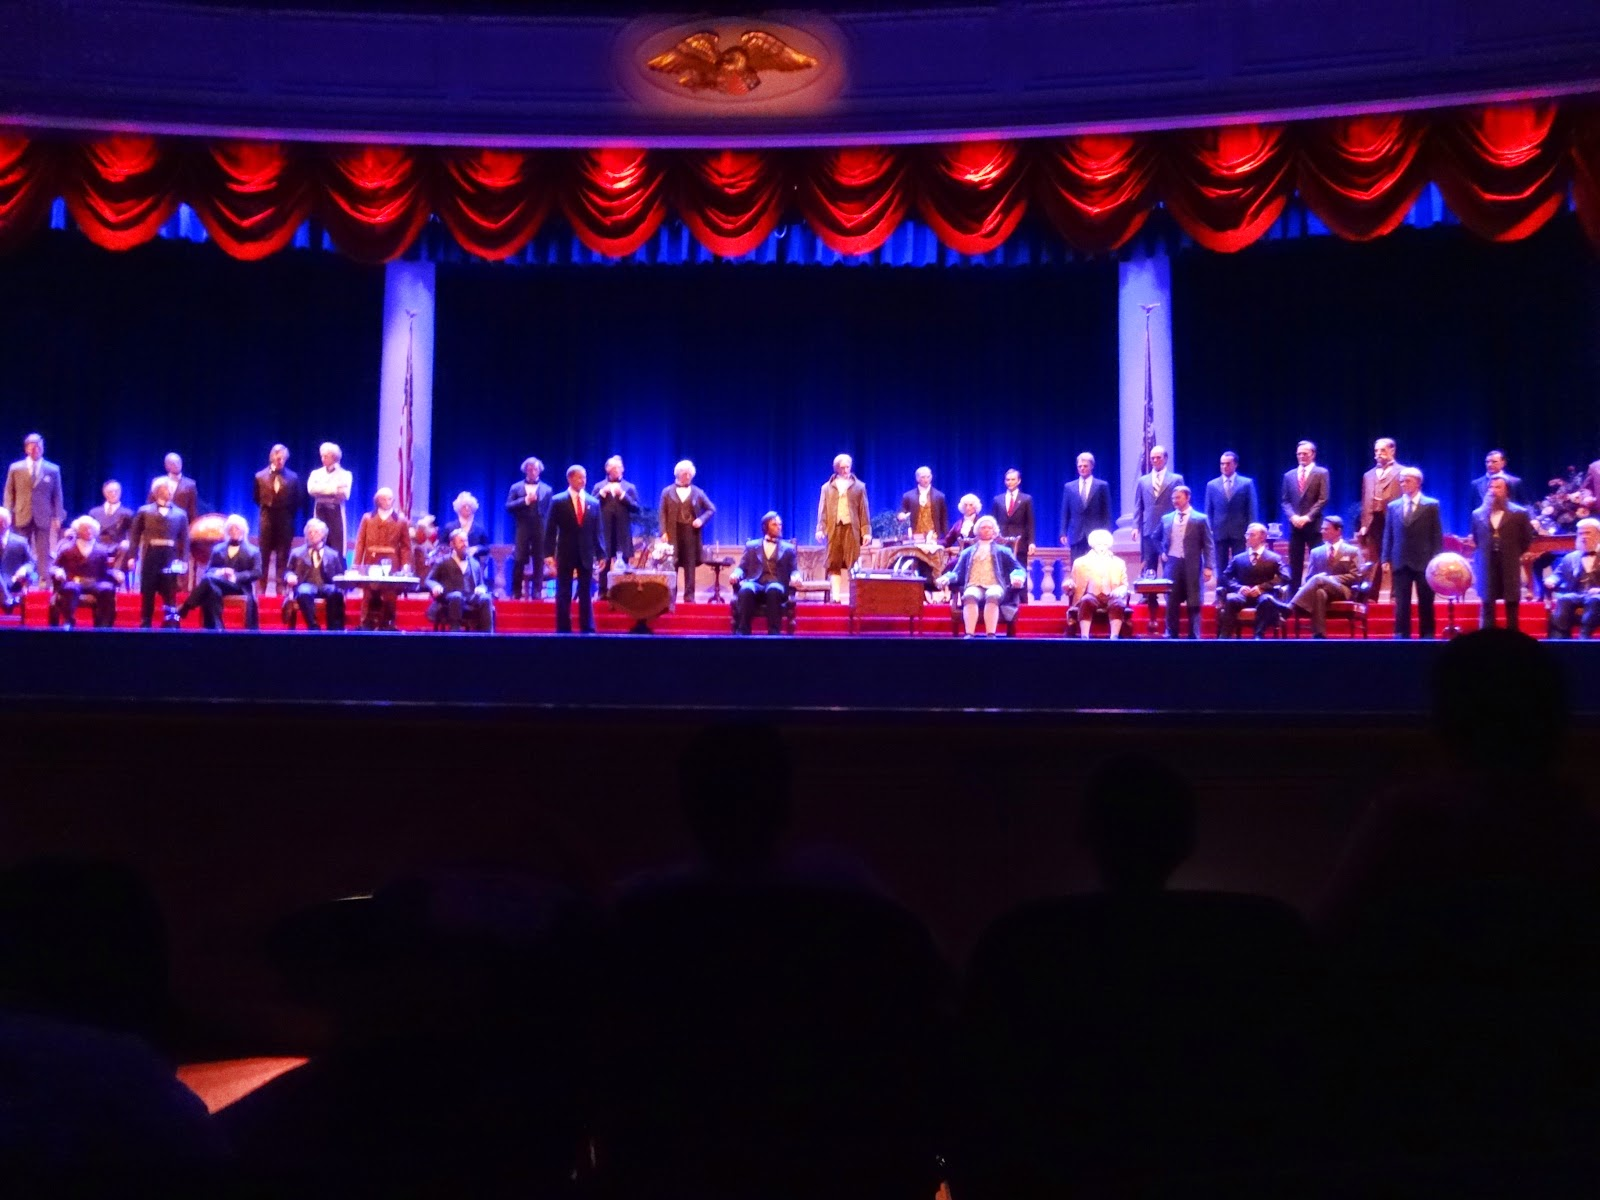 hall of presidents - magic kingdom - orlando, eua